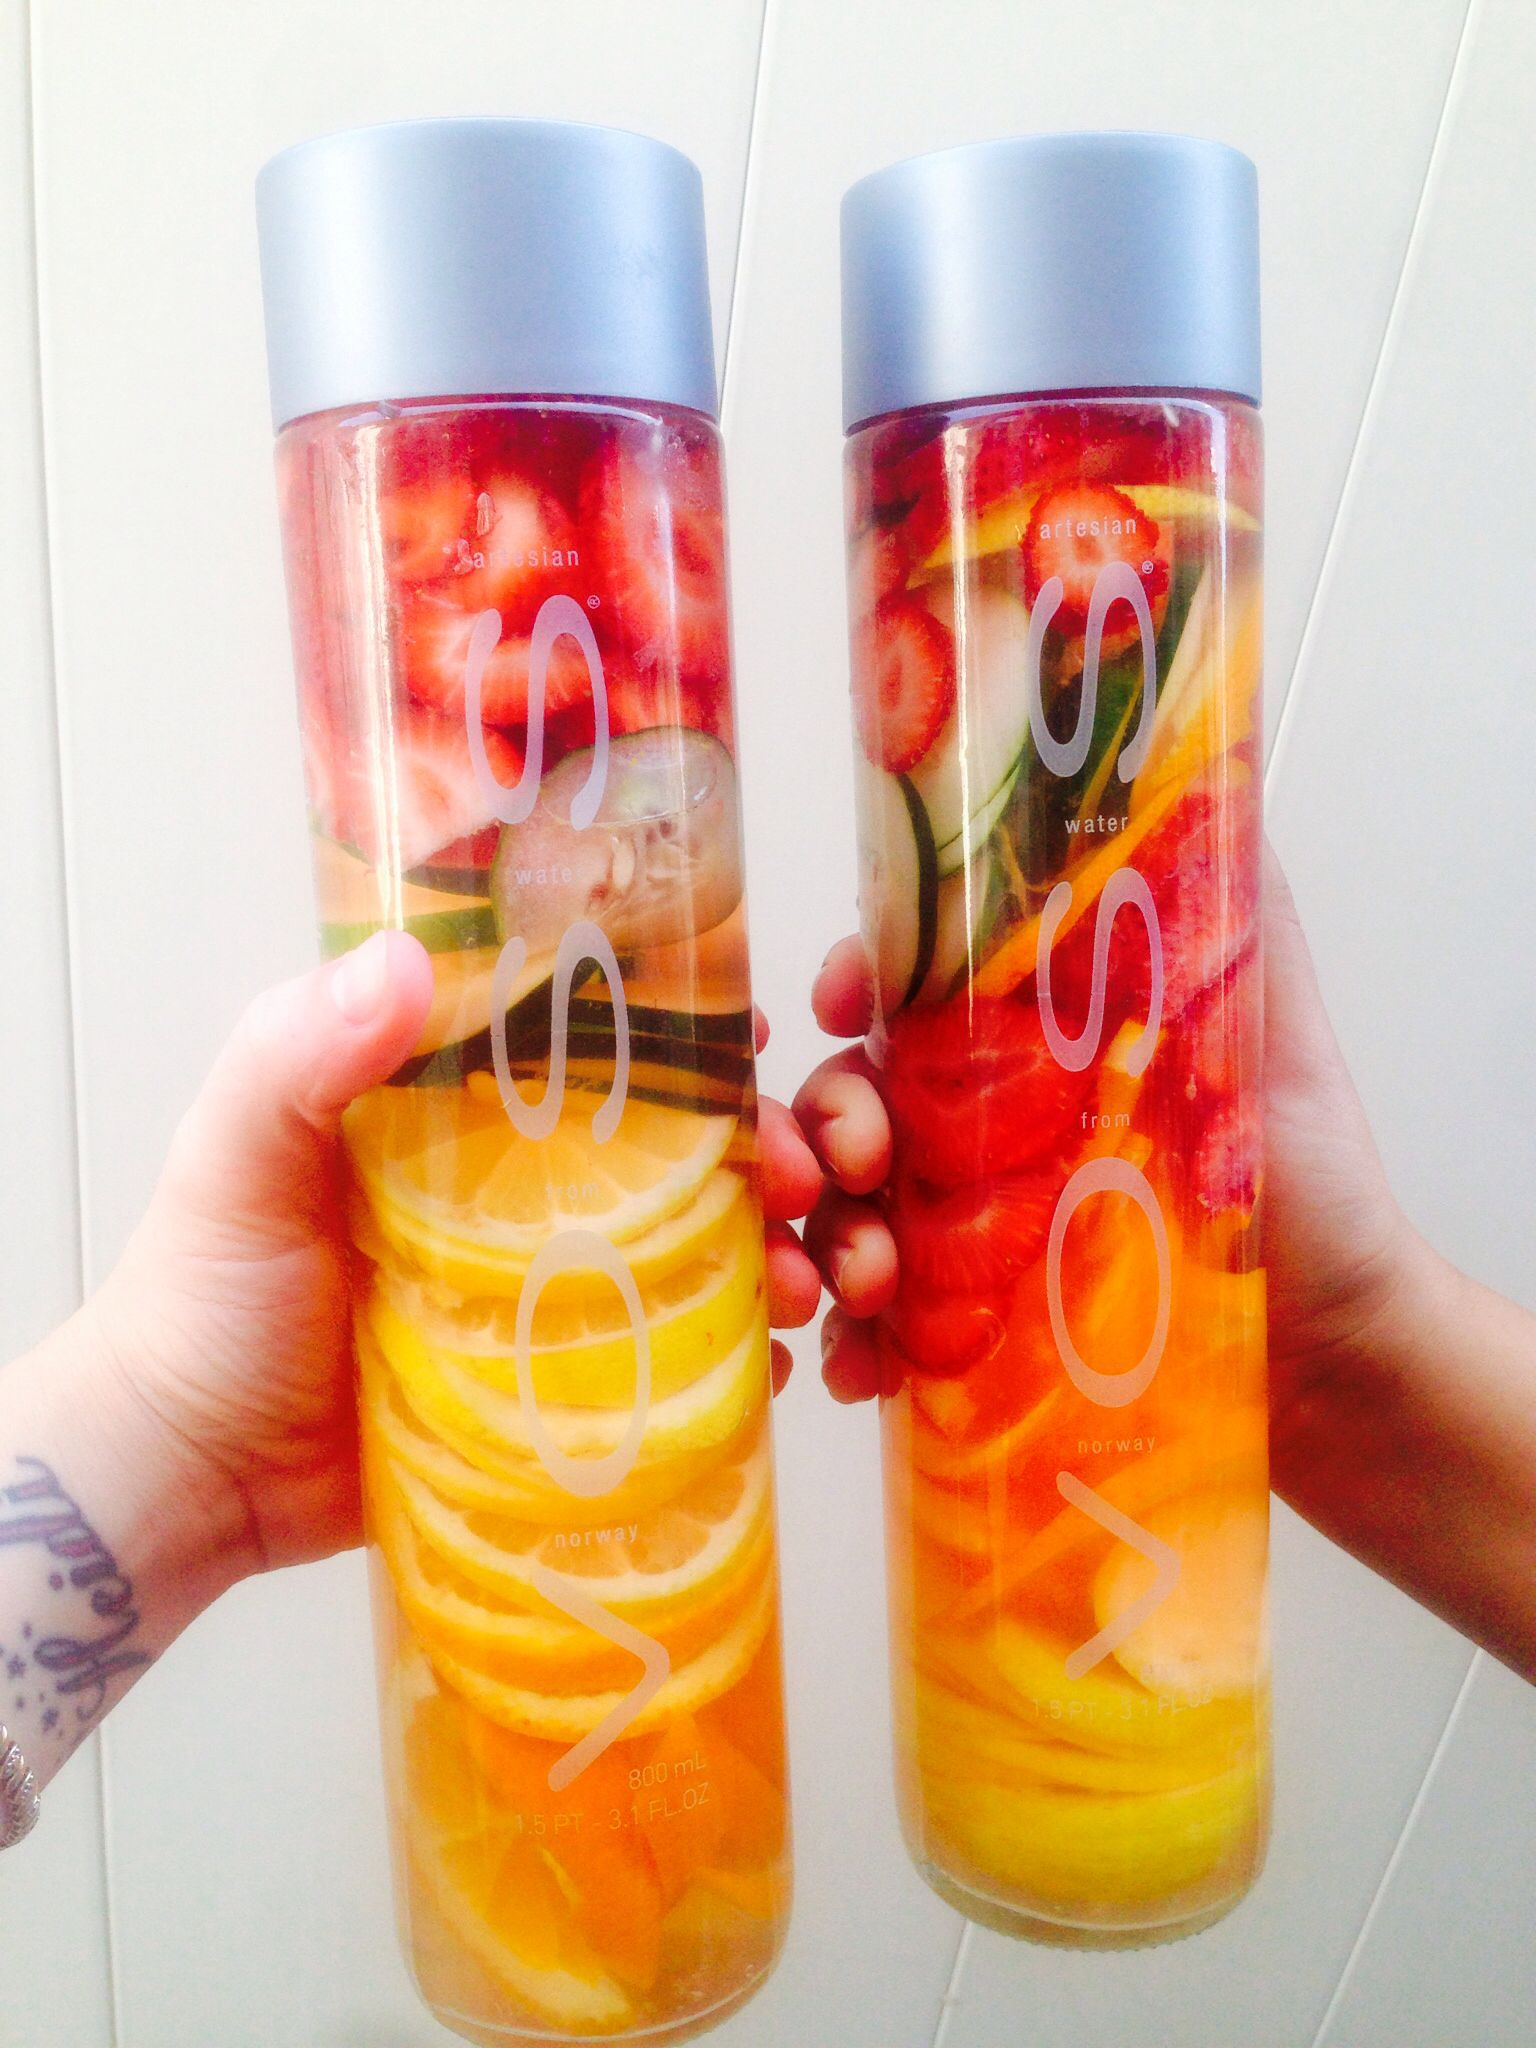 is voss water good for you